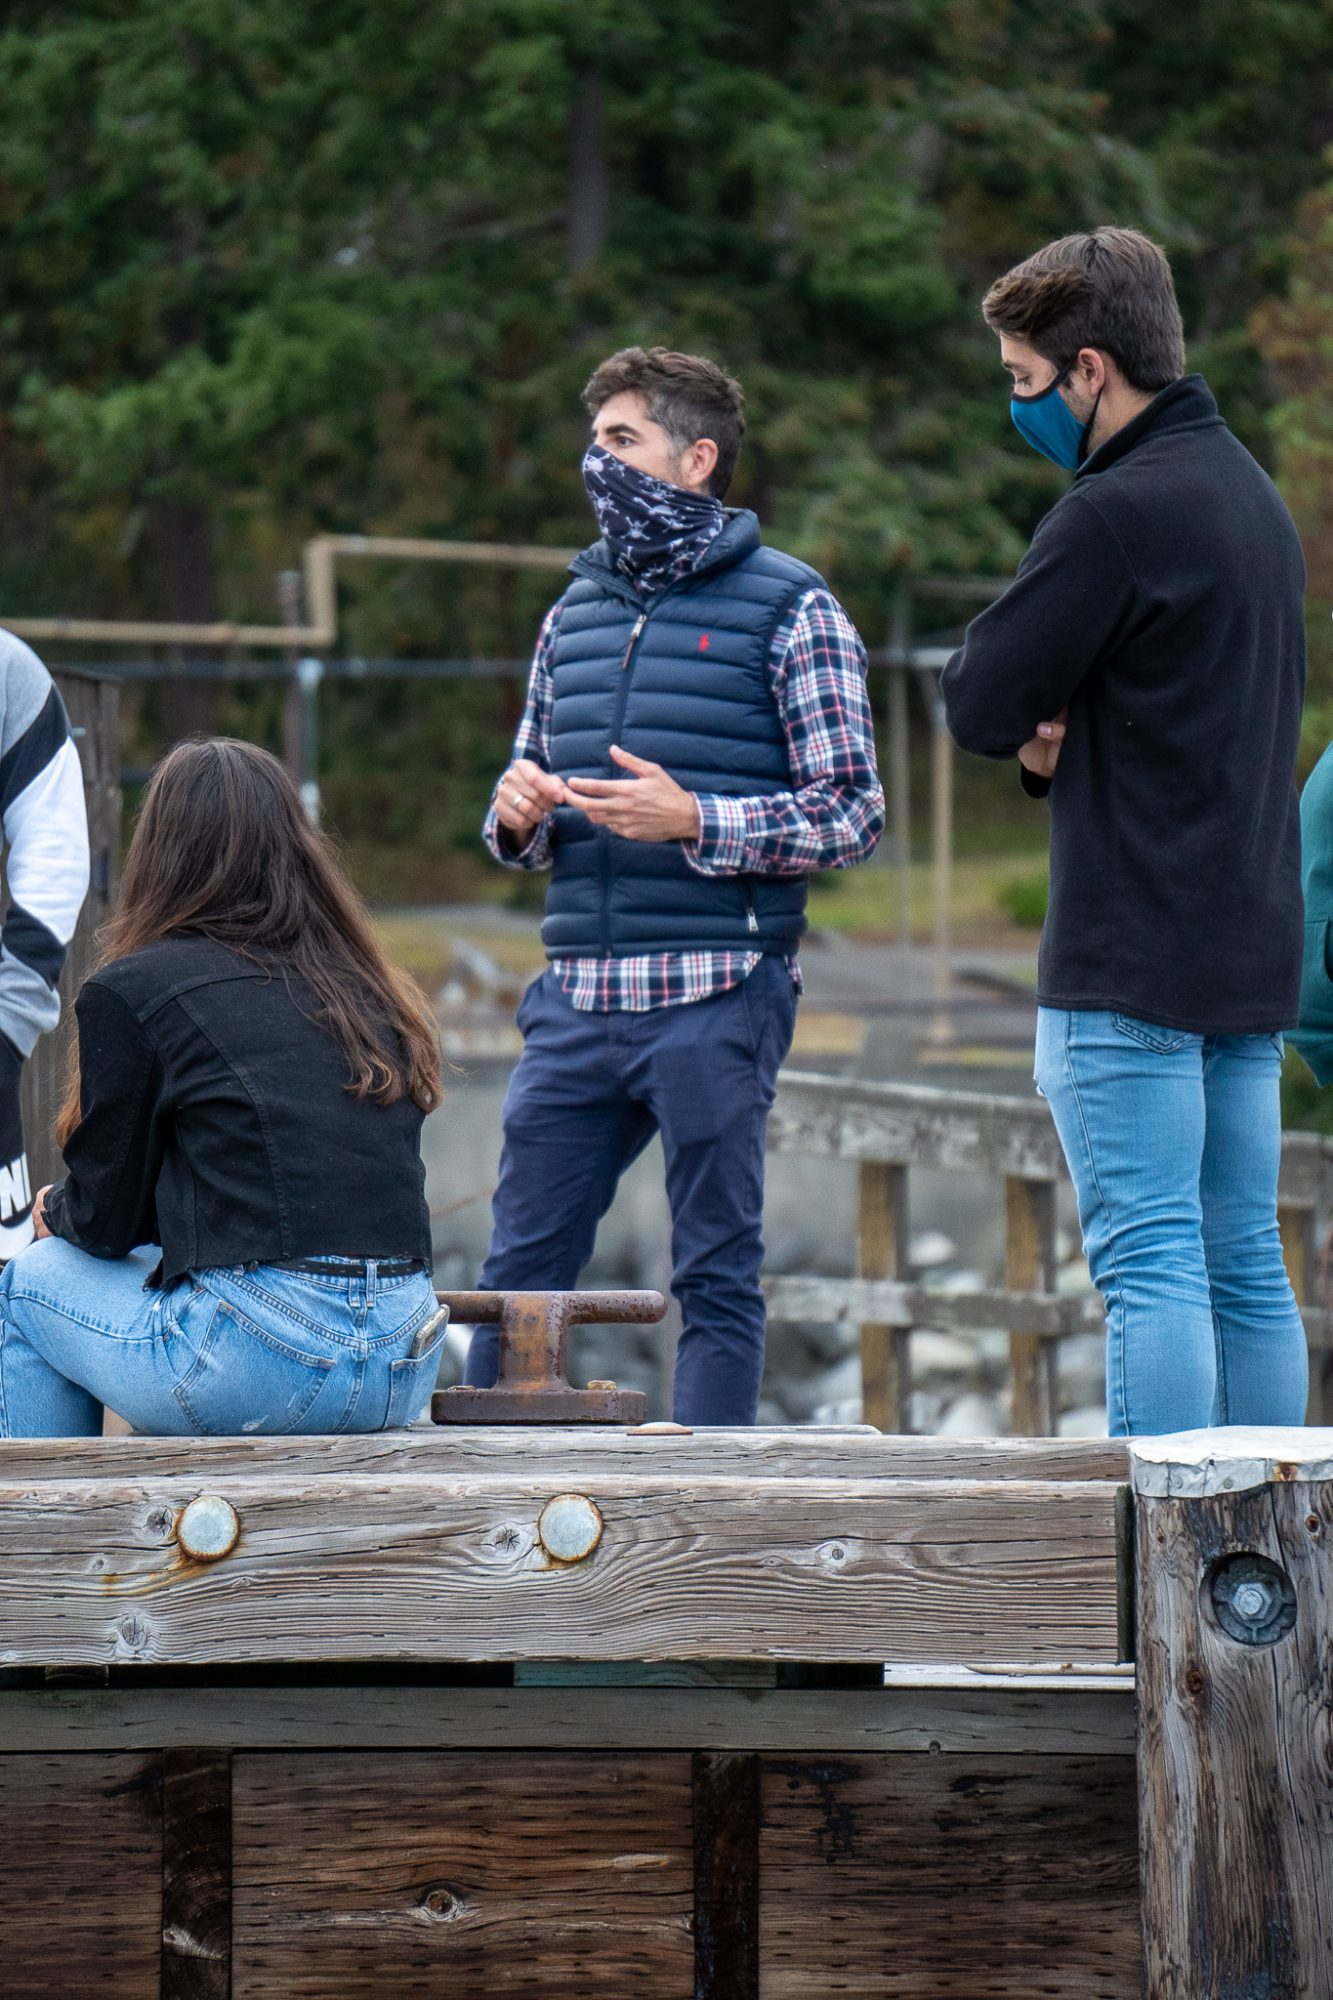 José Guzman instructing the class from the FHL dock.